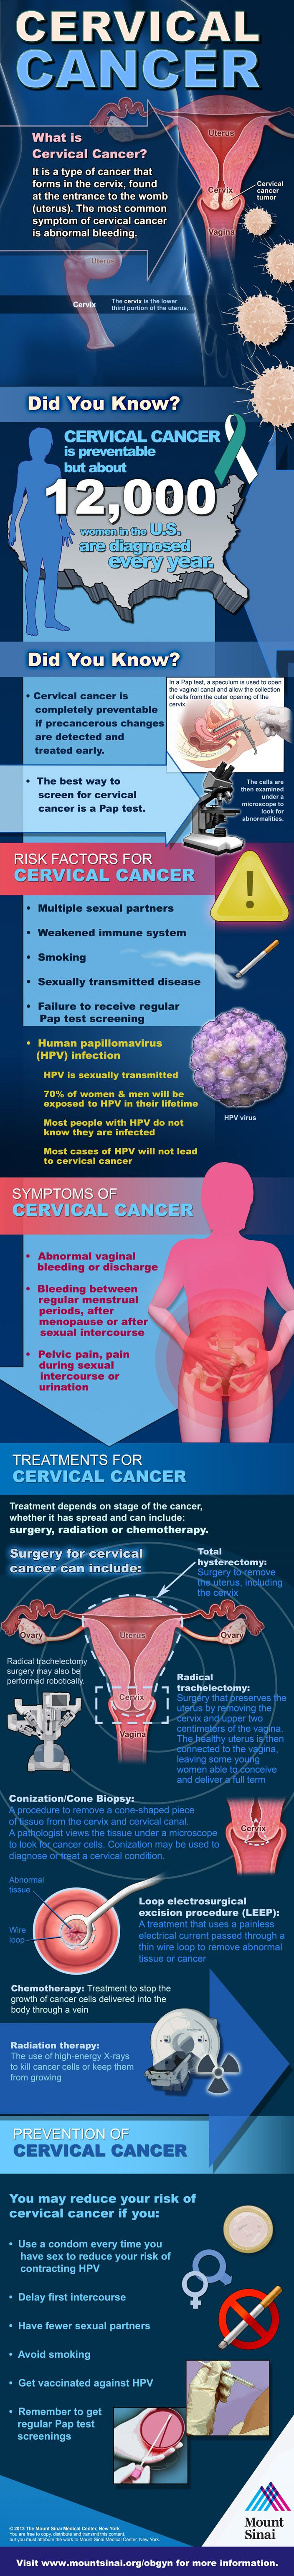 The best way to be screened for cervical cancer is a Pap test. Discover more about the risk factors, symptoms, treatments and prevention tips for it. Visit www.birthchoice.com to schedule an appointment at our local clinic for a free well woman exam!